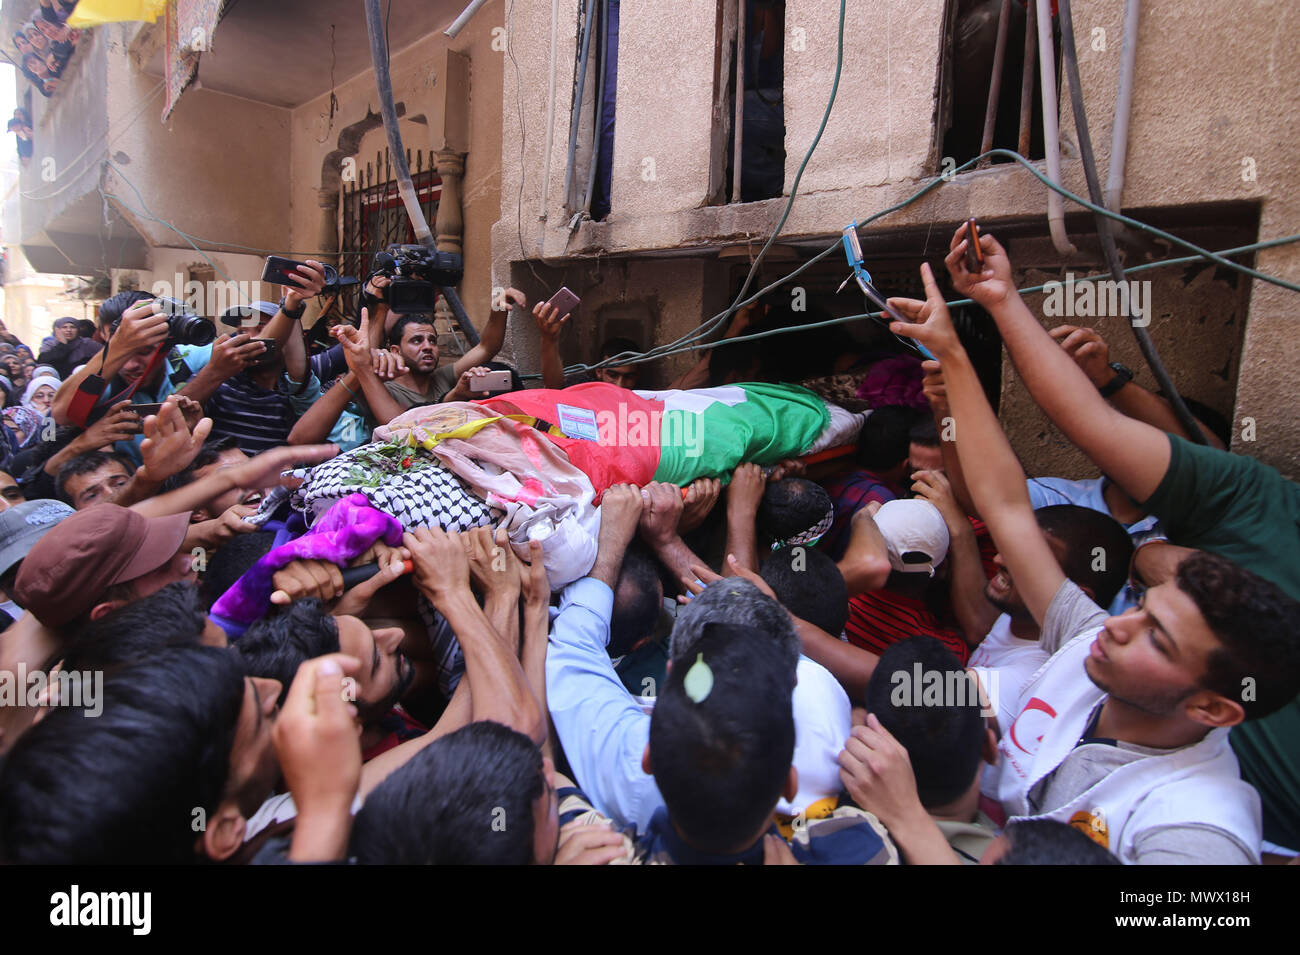 Gaza. 2nd June, 2018. Mourners carry the body of Razan al-Najjar during her funeral in the southern Gaza Strip City of Khan Yunis, on June 2, 2018. Thousands of outraged Palestinian mourners buried on Saturday the female paramedic who was shot dead by Israeli gunfire close to Gaza's border with Israel. Credit: Khaled Omar/Xinhua/Alamy Live News - Stock Image